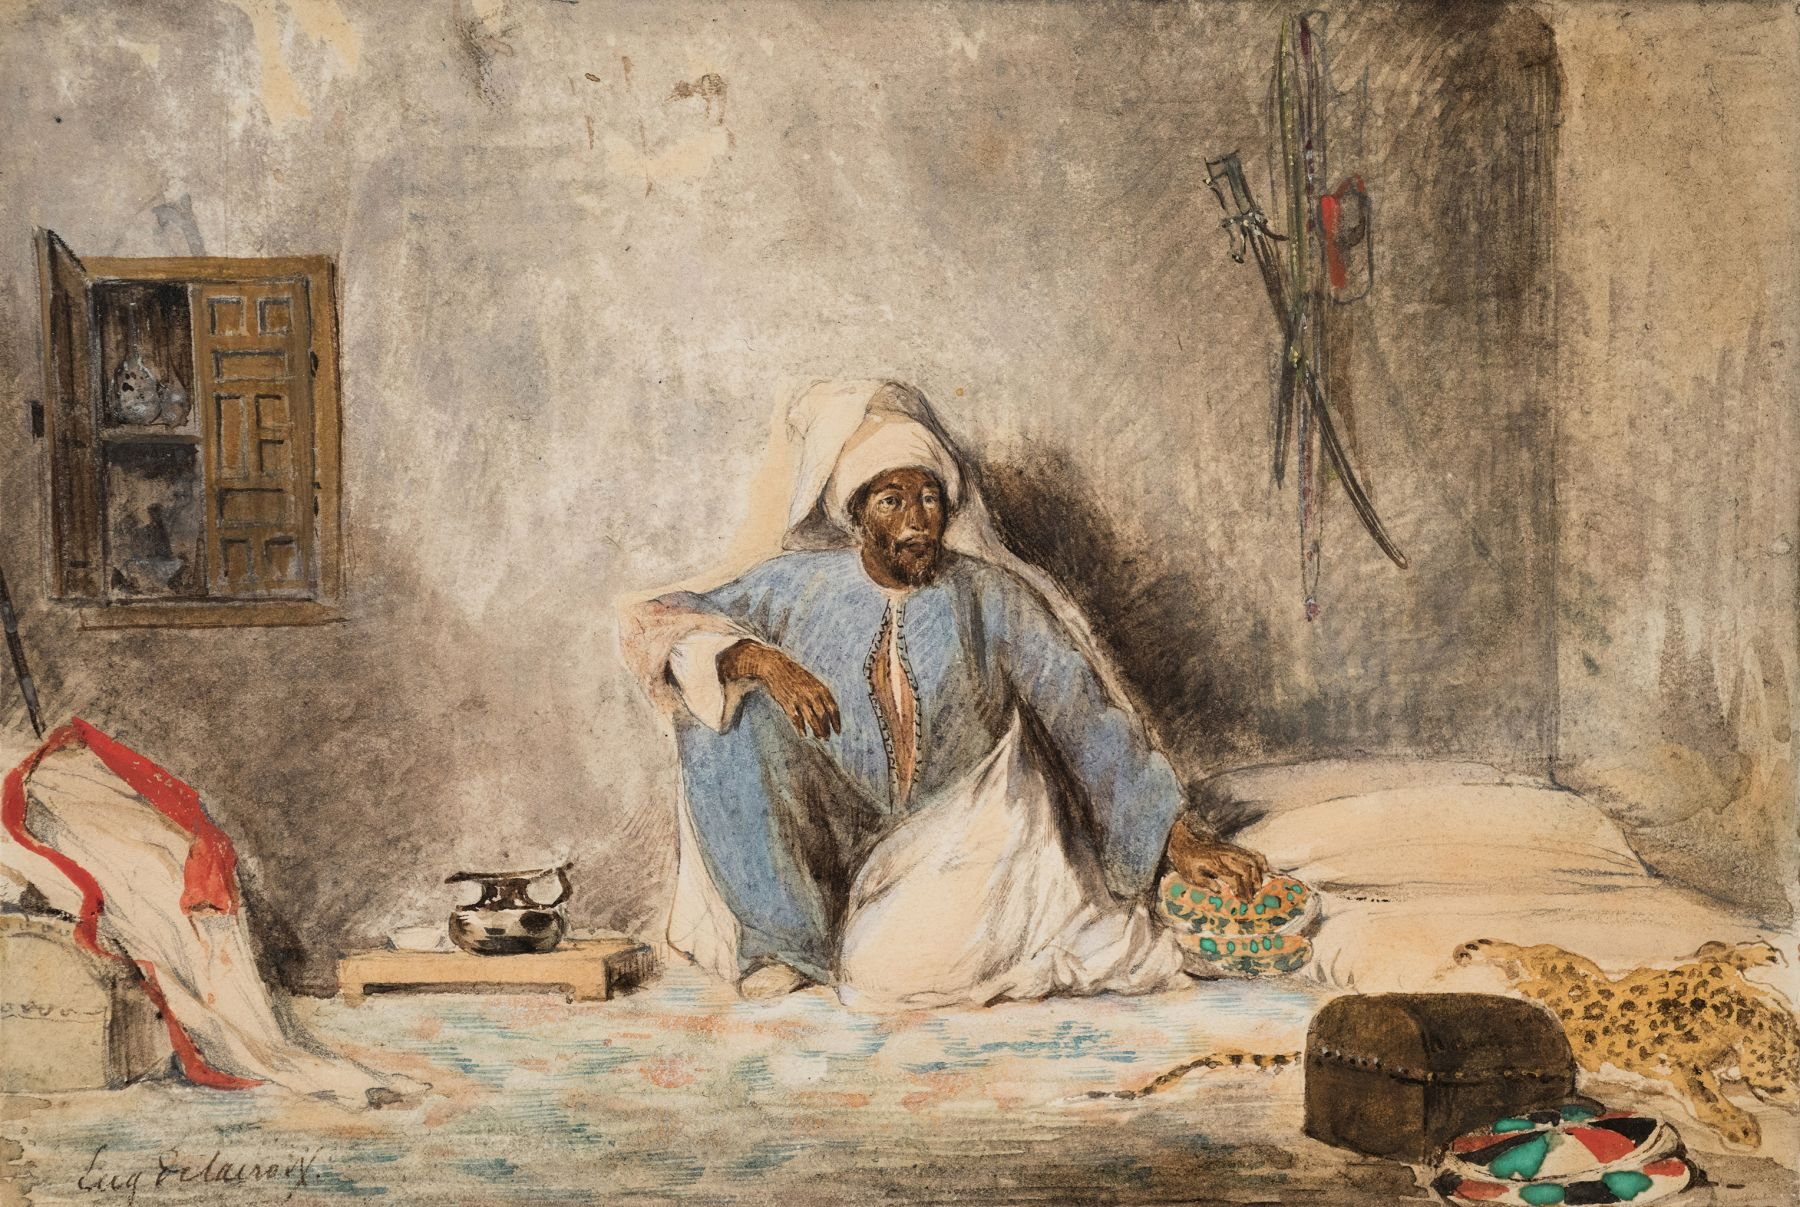 Eugene delacroix Military Chief ben Abou in a Morrocan Interior, 1832    Watercolor on paper 5 3/8 x 8 1/8 inches